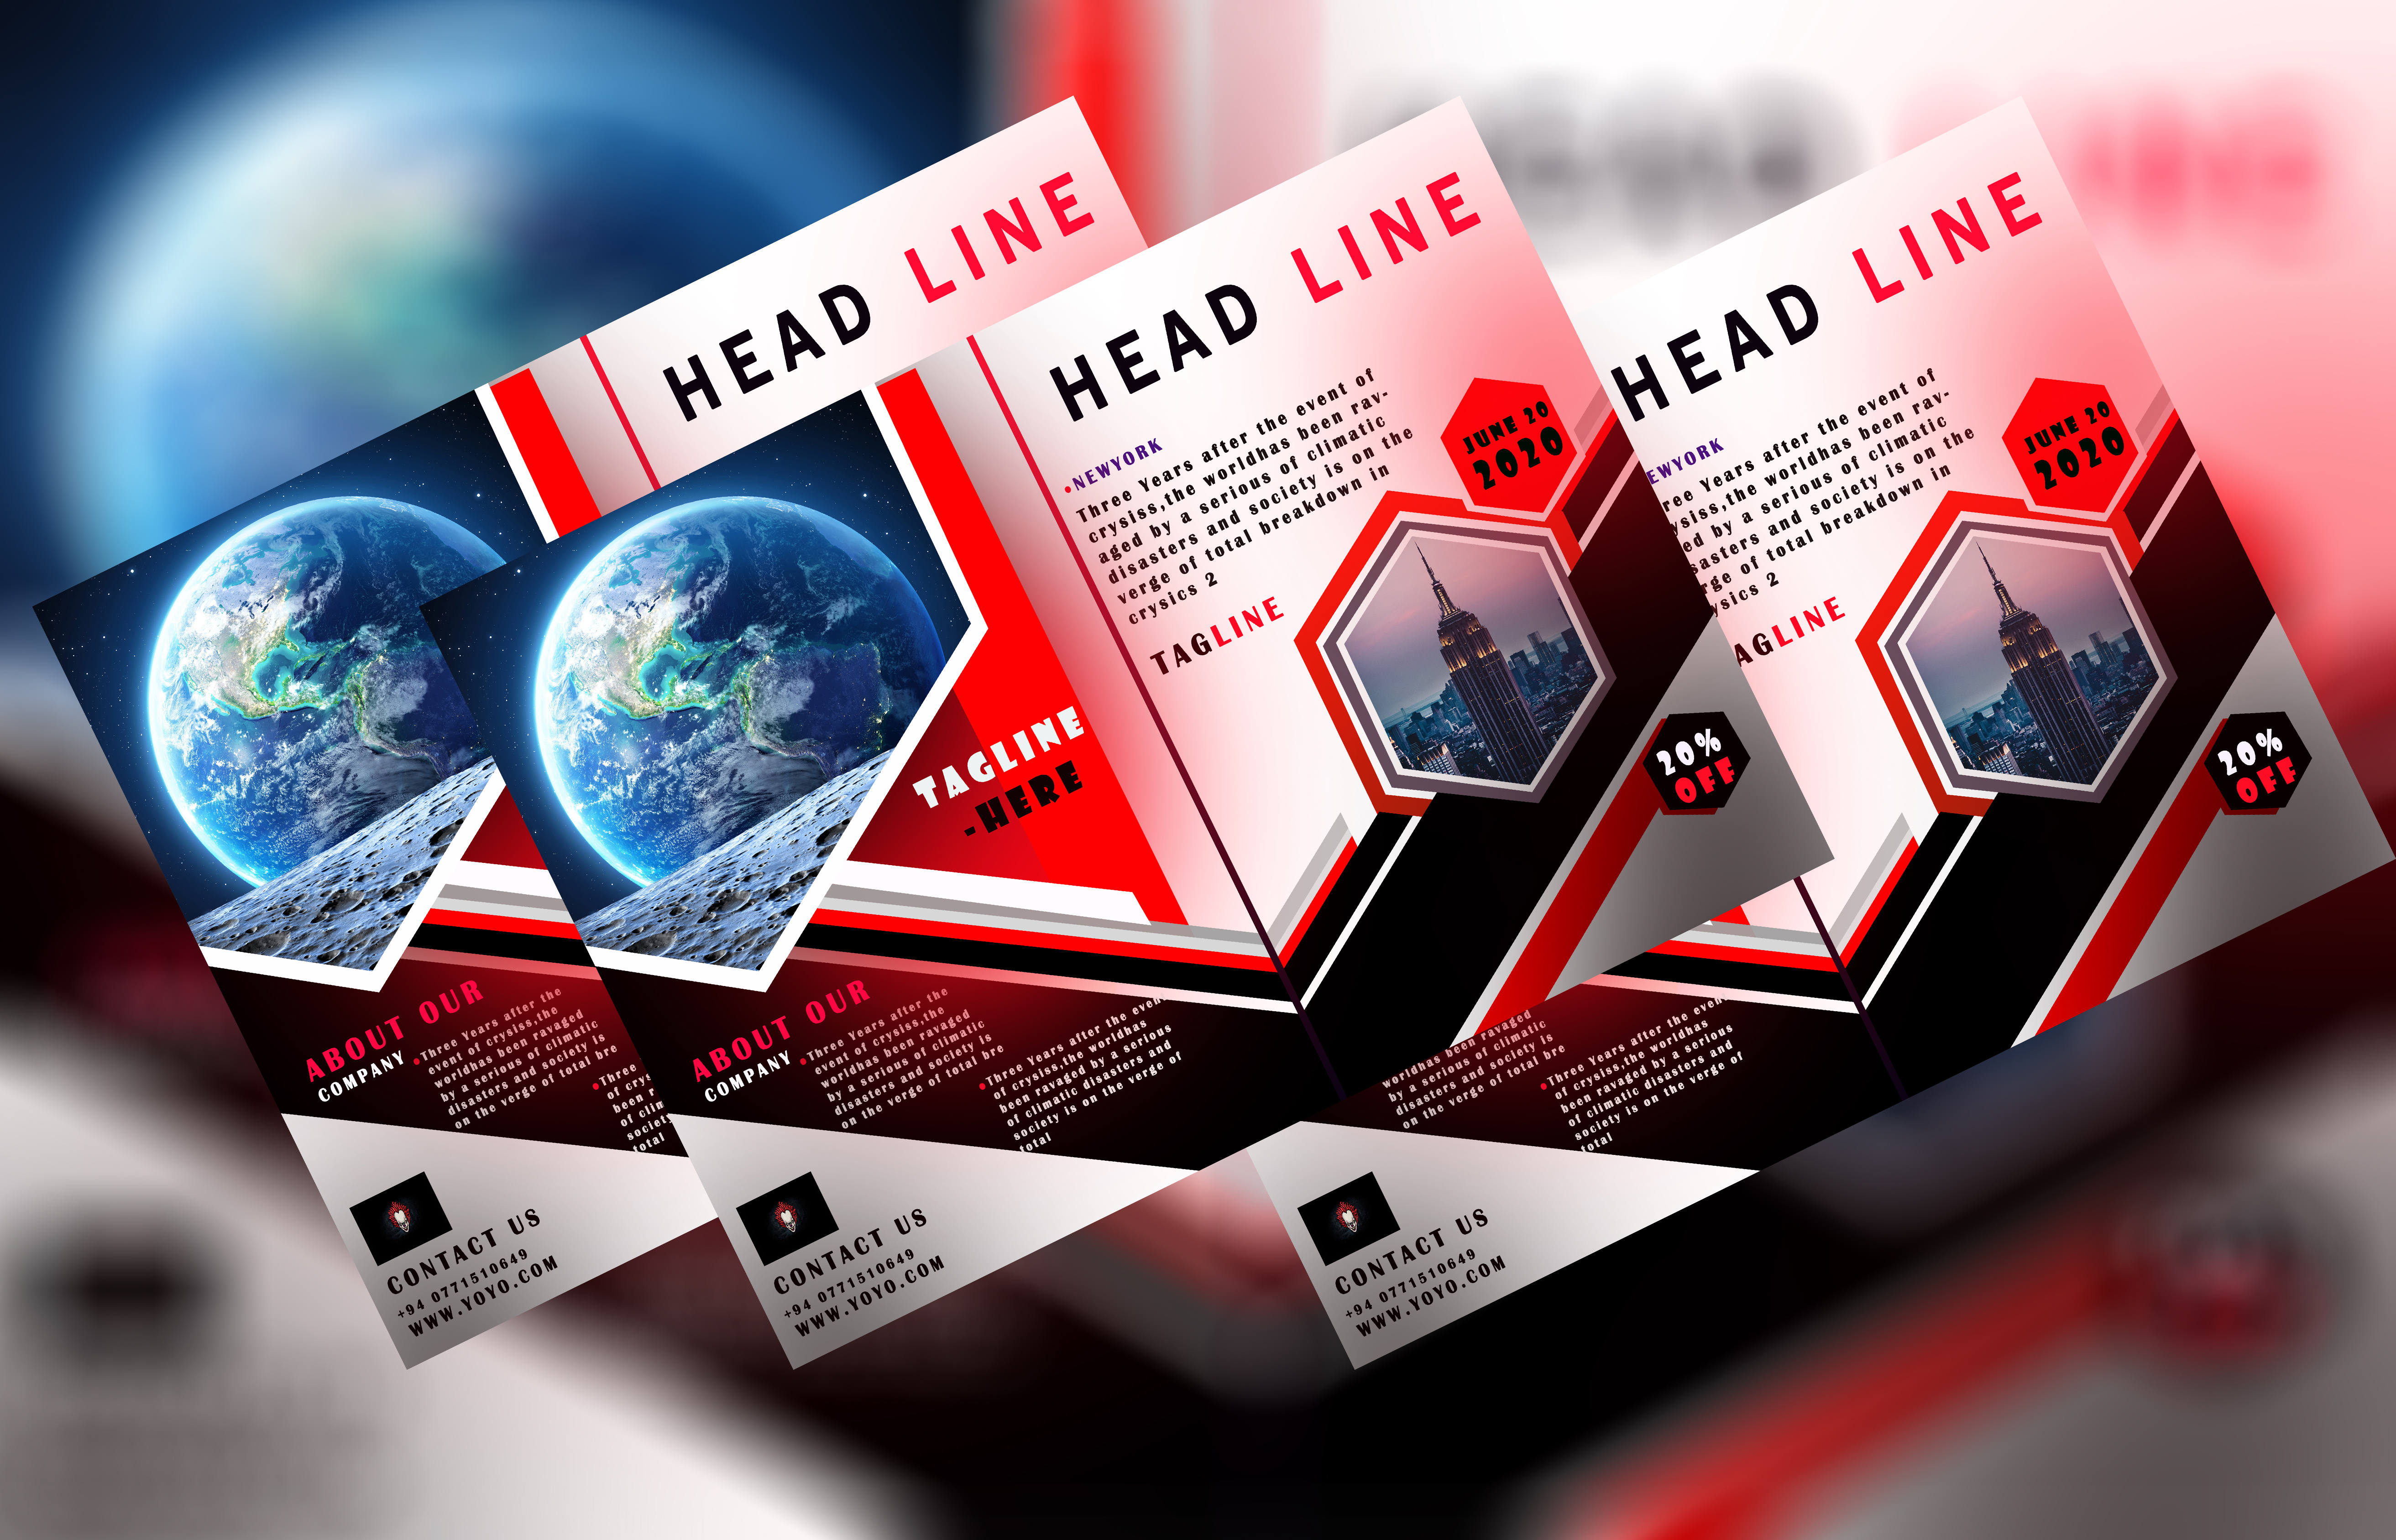 I WILL DO GREAT Flyer Designs +Brochure Designs +Logo Designs +Posters +Business Cards